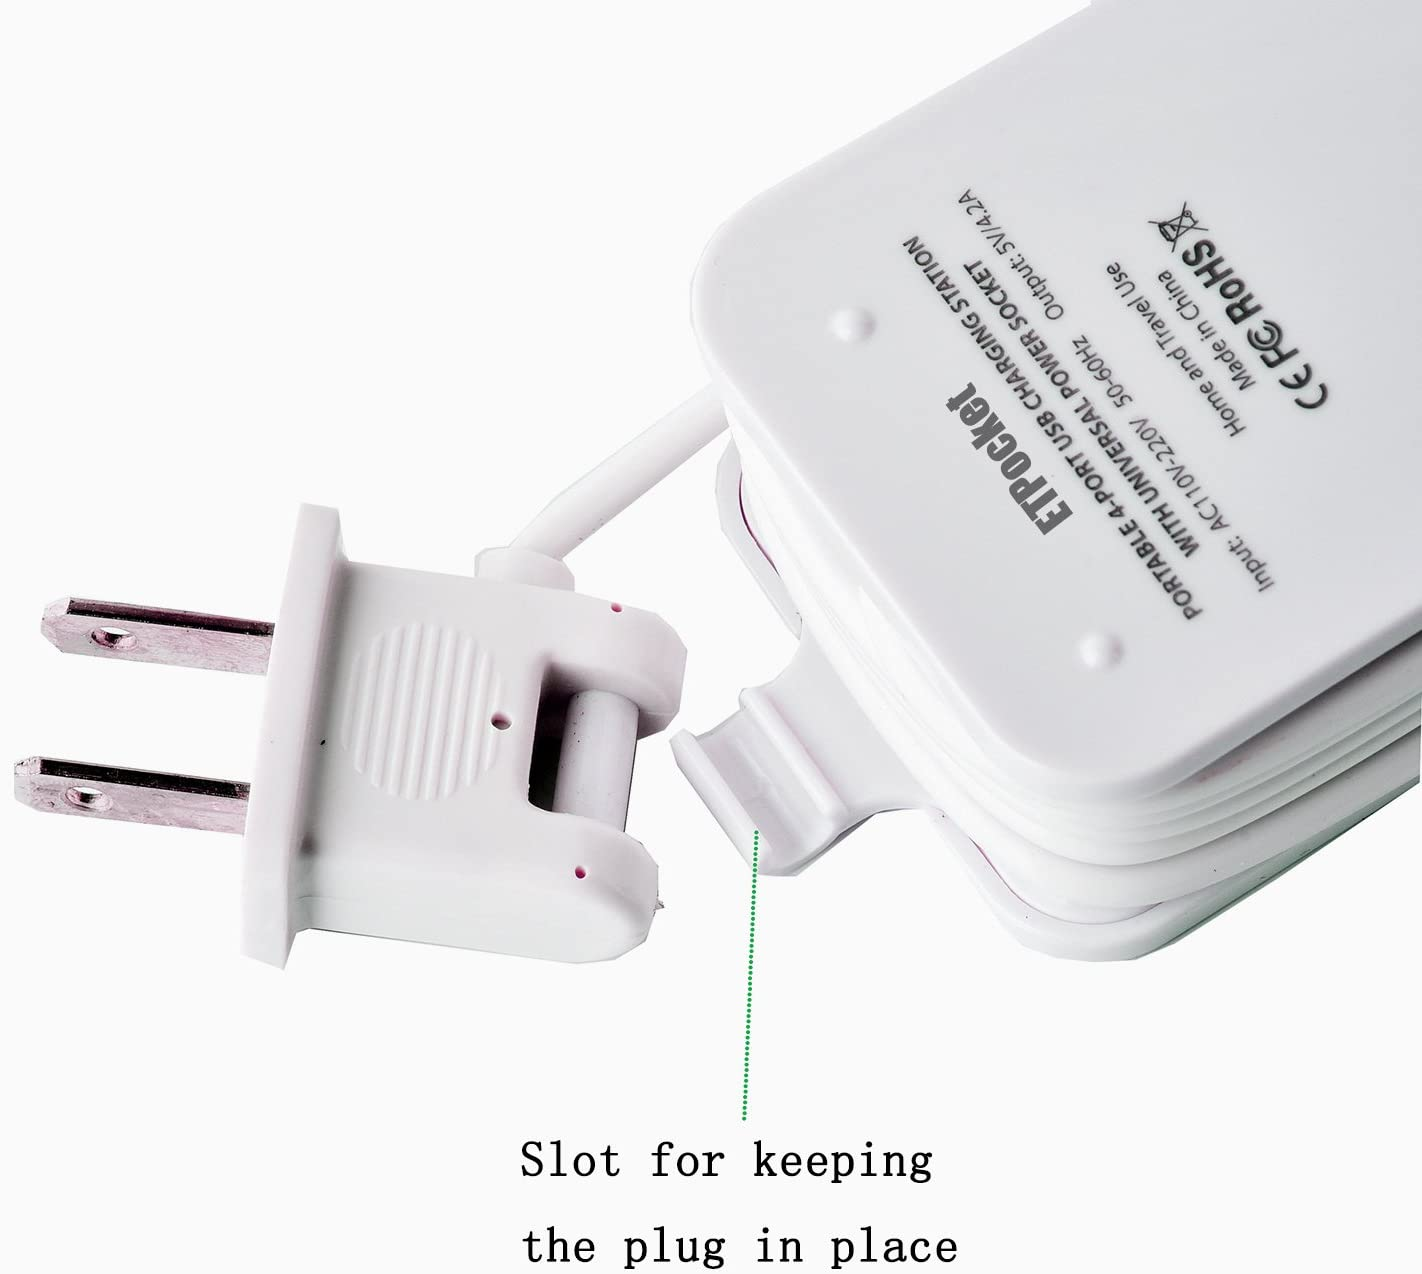 USB Power Strip Portable Travel Charger Outlets 2.1AMP 1AMP 21W 5Foot Power Supply Cord With Universal Plug Input From 100v 240v Power Sockets USB